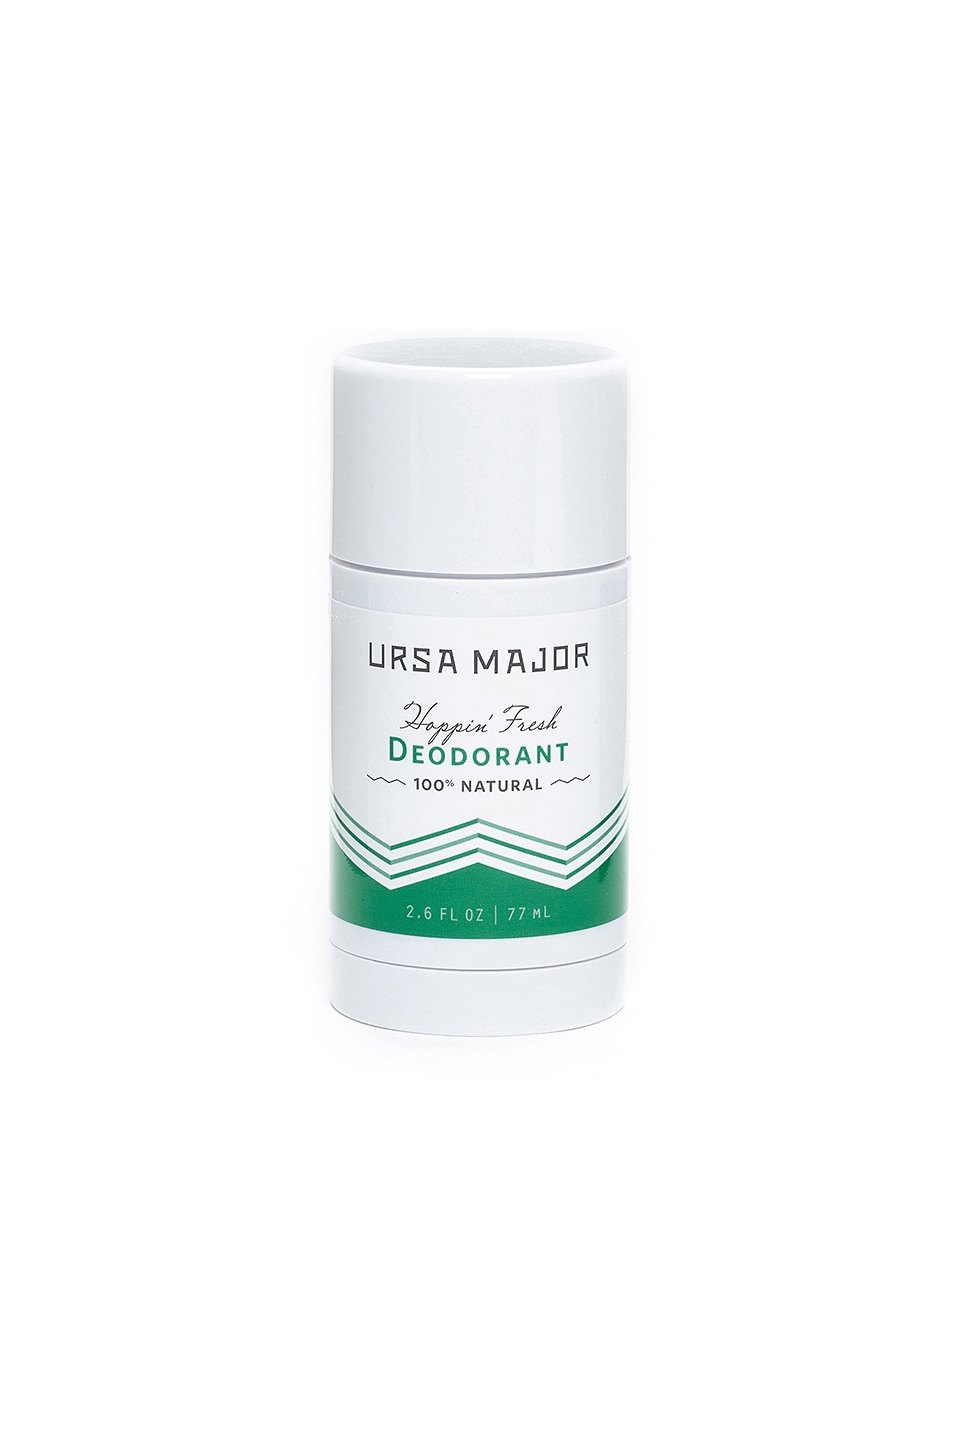 Ursa Major Hoppin Fresh Deodorant in Neutral